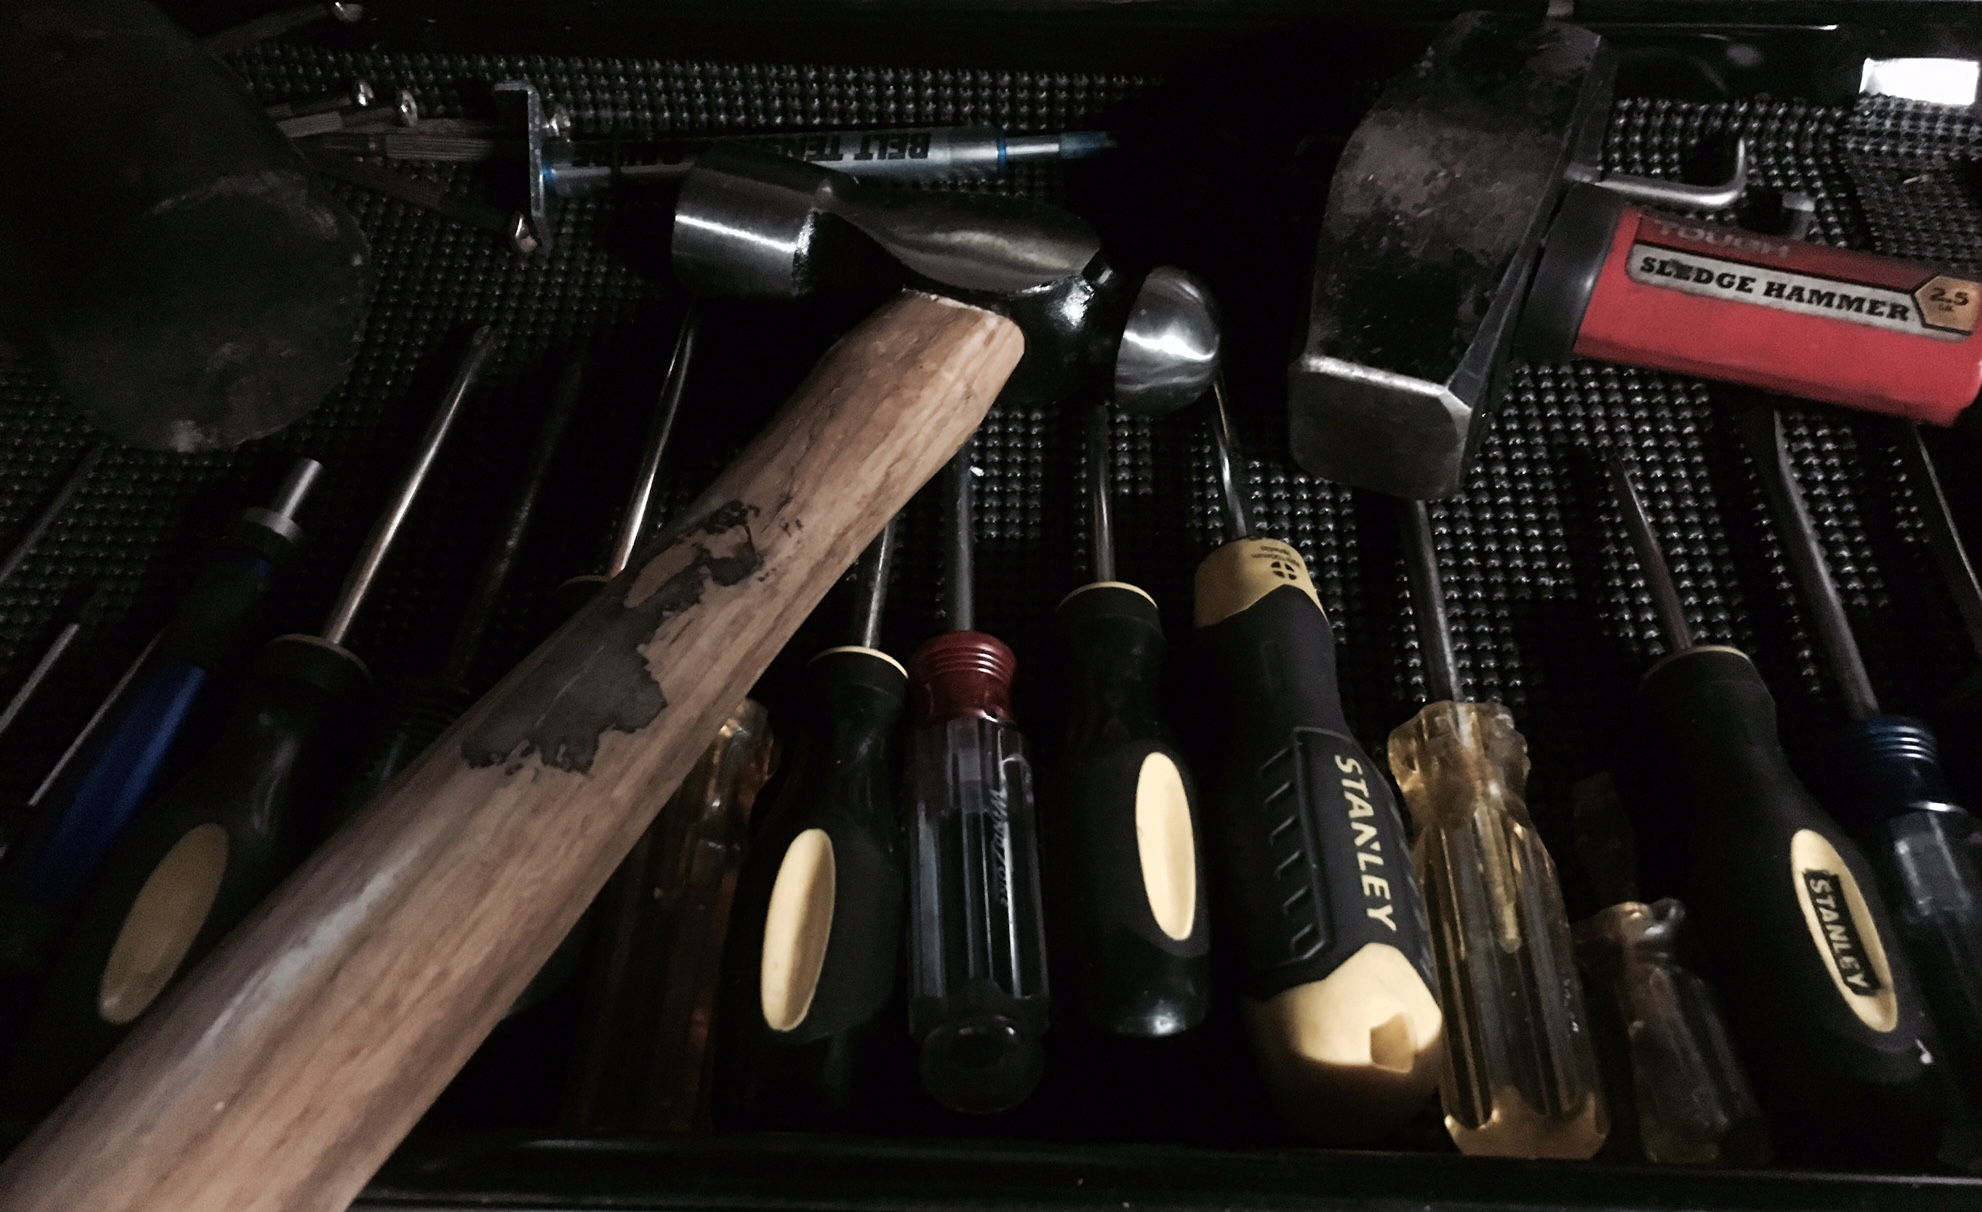 A picture of 3 hammers and multiple screwdrivers in a tool drawer